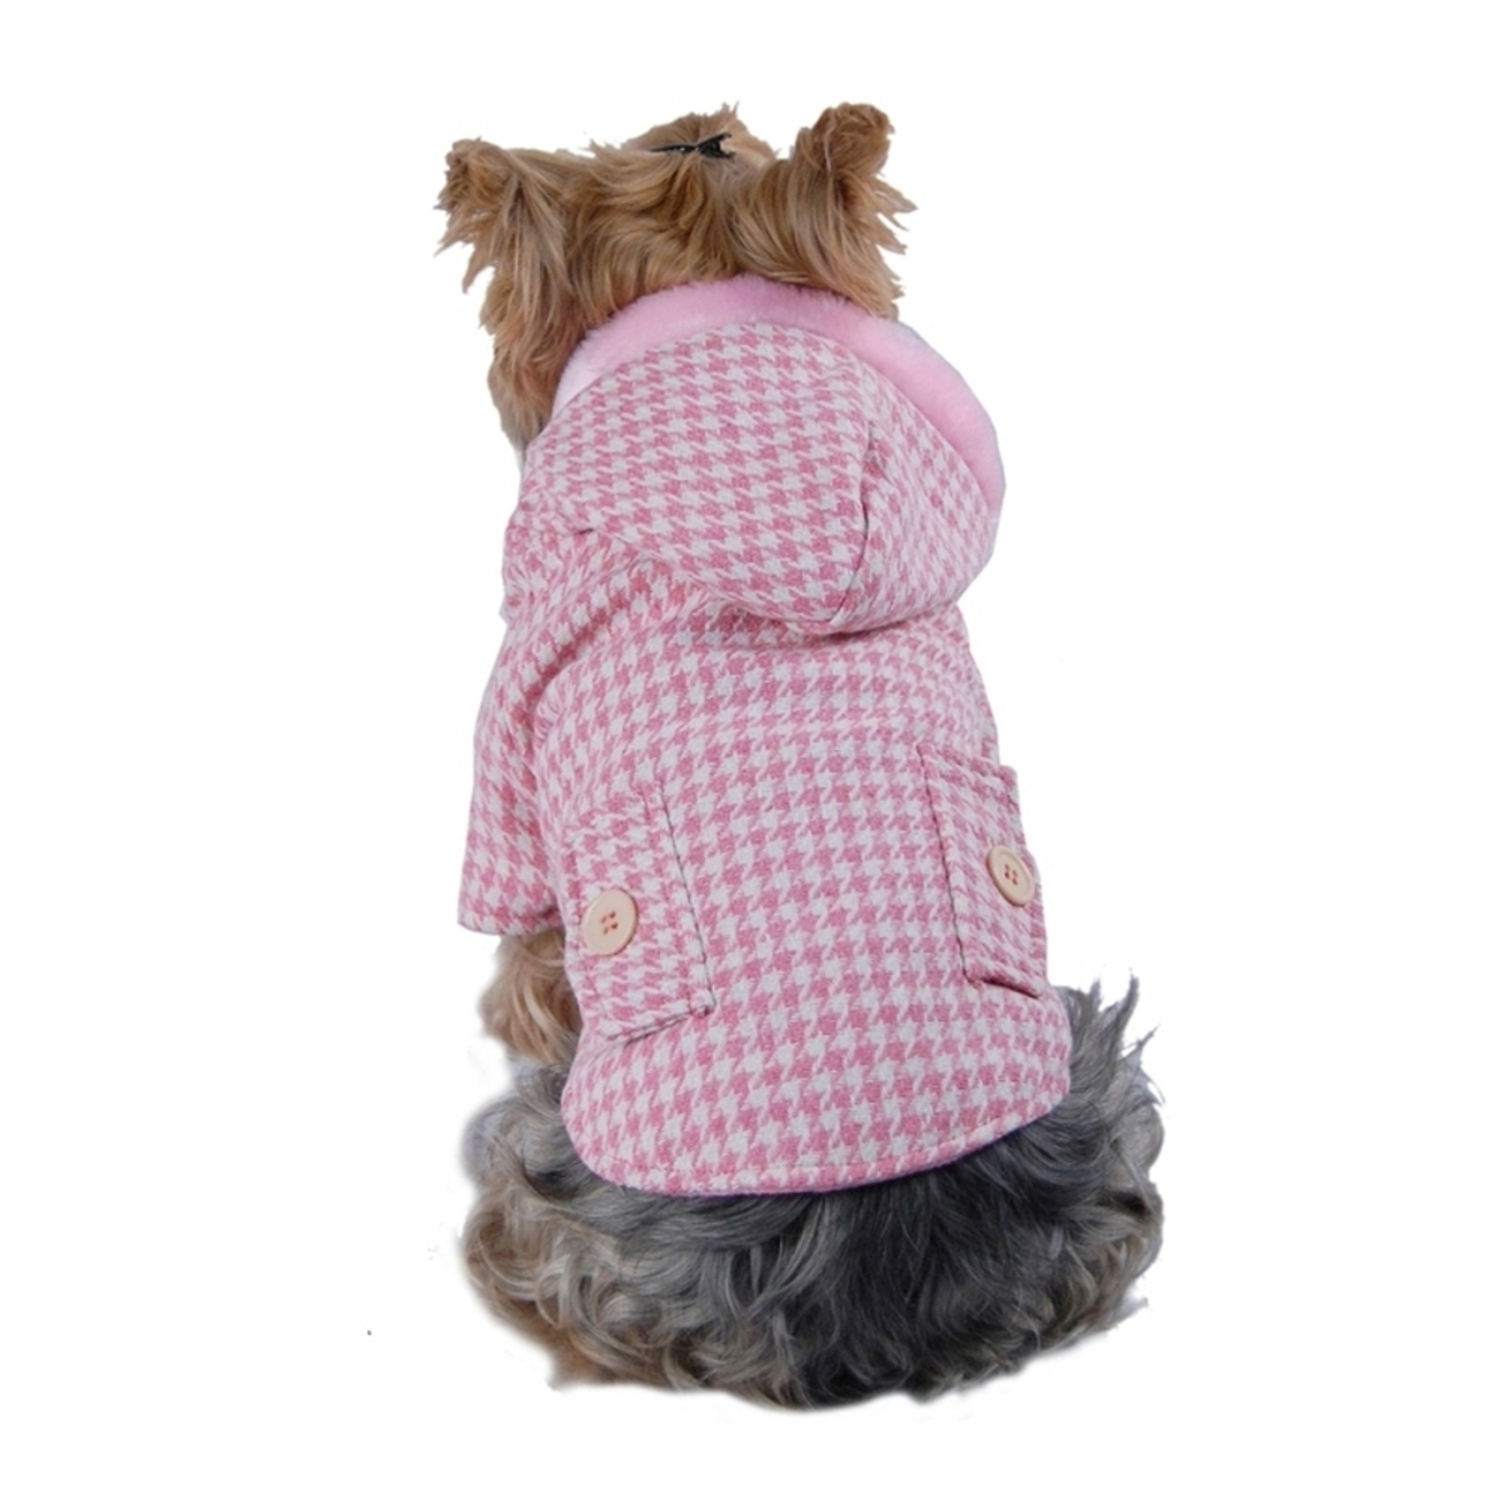 Pink Hundstooth Jacket For Puppy Dog - Medium (Holiday Christmas Gift for Pet)